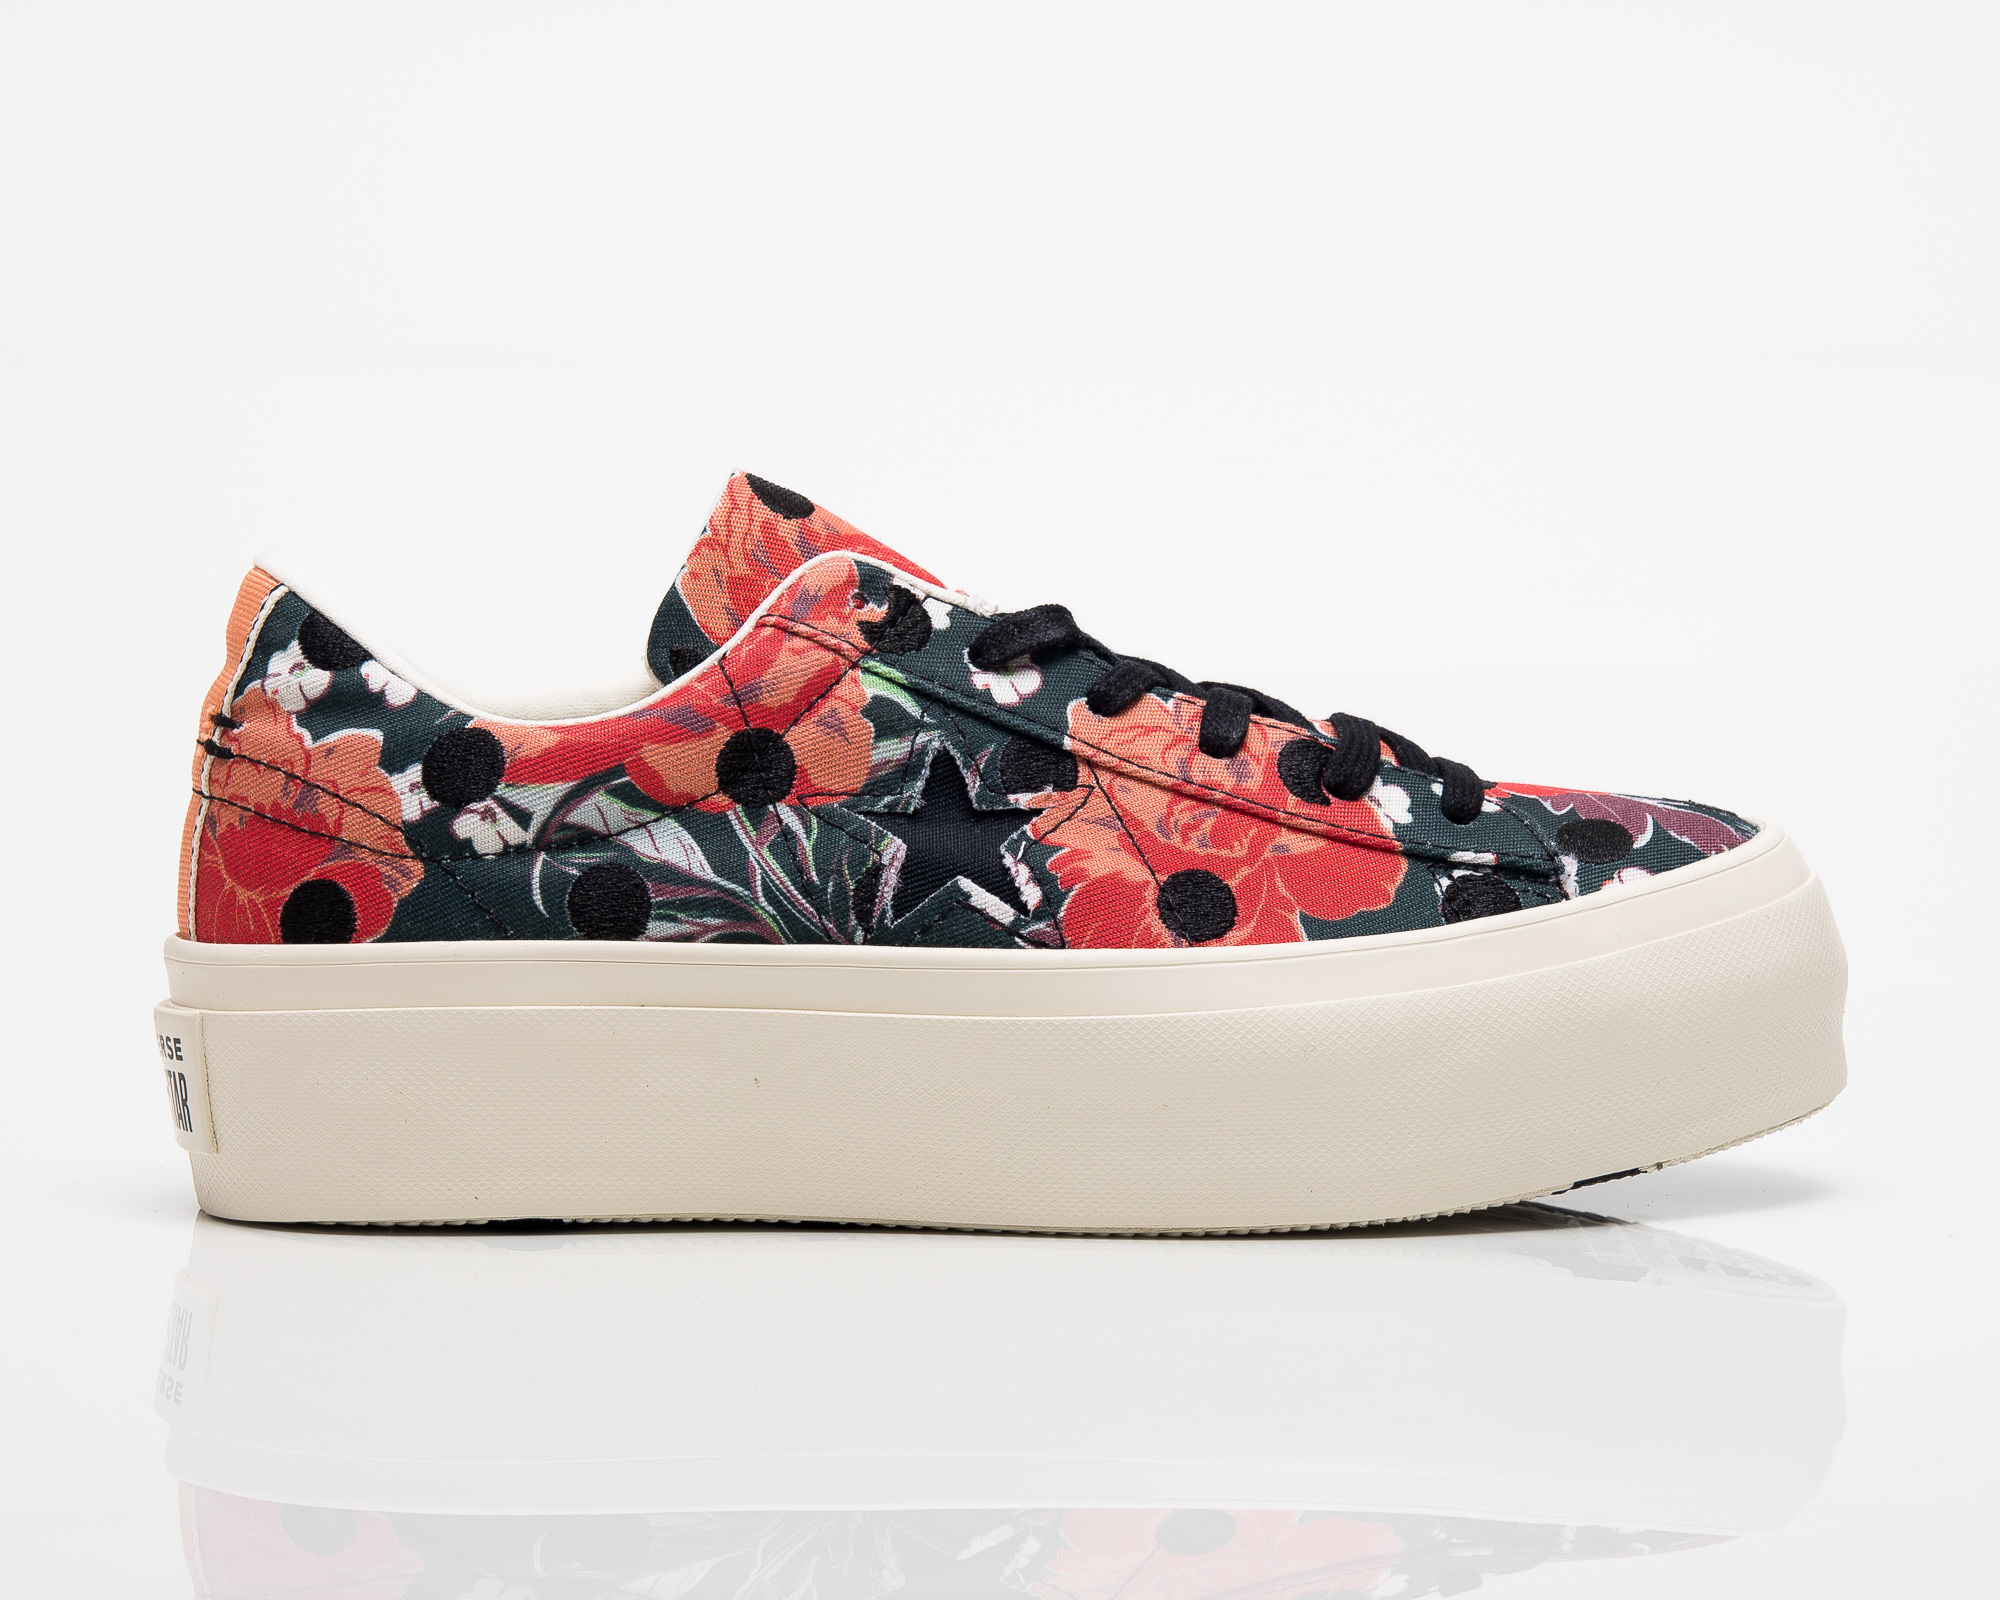 3d2d9064876a46 Converse Wmns One Star Platform Dots Ox - Shoes Casual - Sporting ...